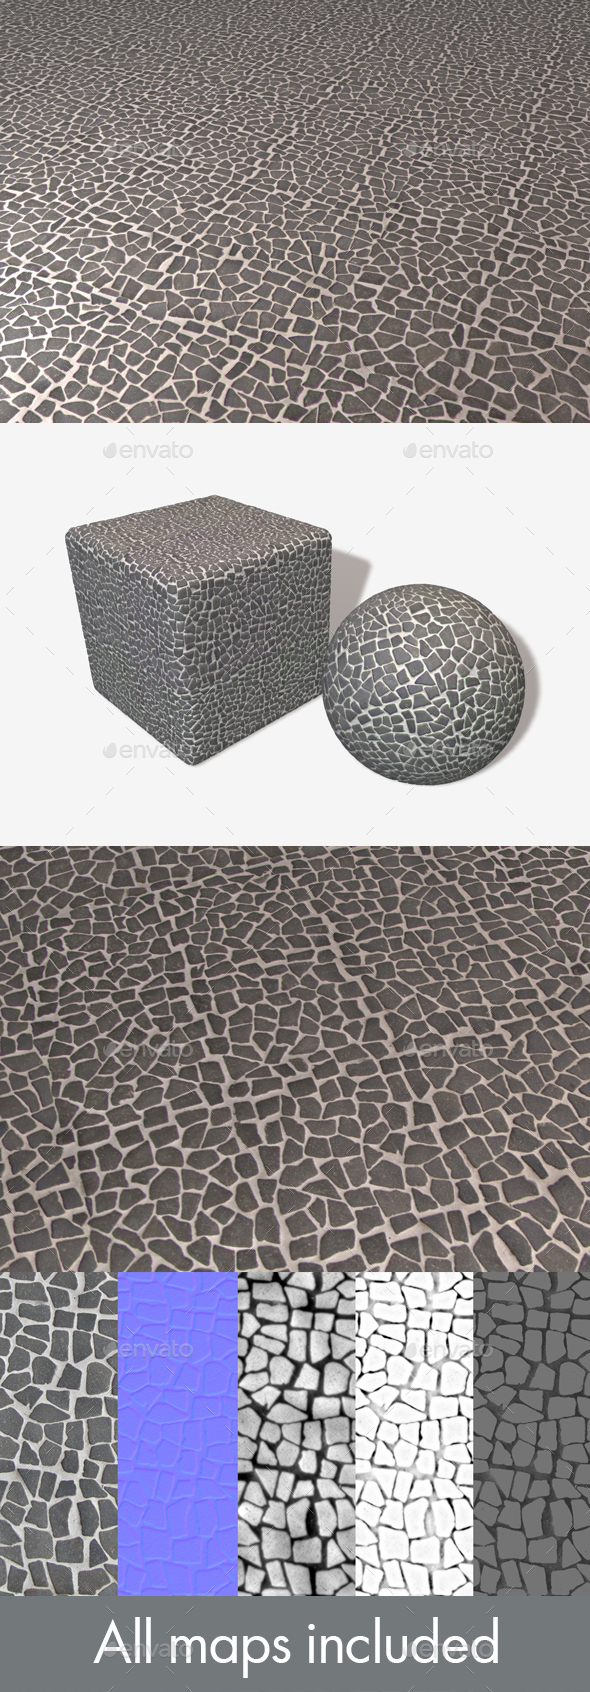 Grey Mosaic Pebbles Seamless Texture - 3DOcean Item for Sale